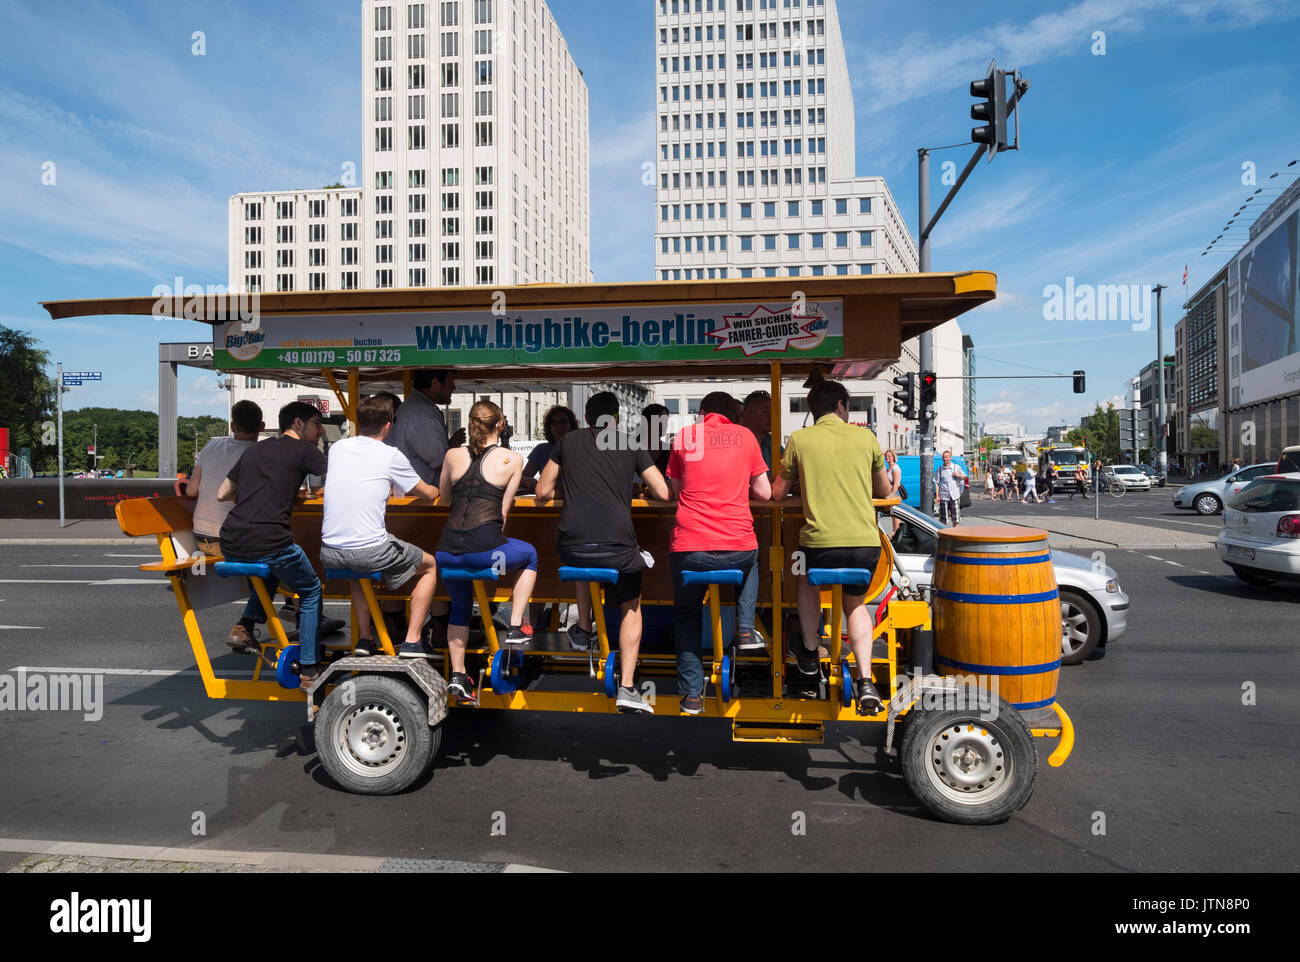 Mobile bicycle powered bar at Potsdamer Platz in Berlin, Germany - Stock Image